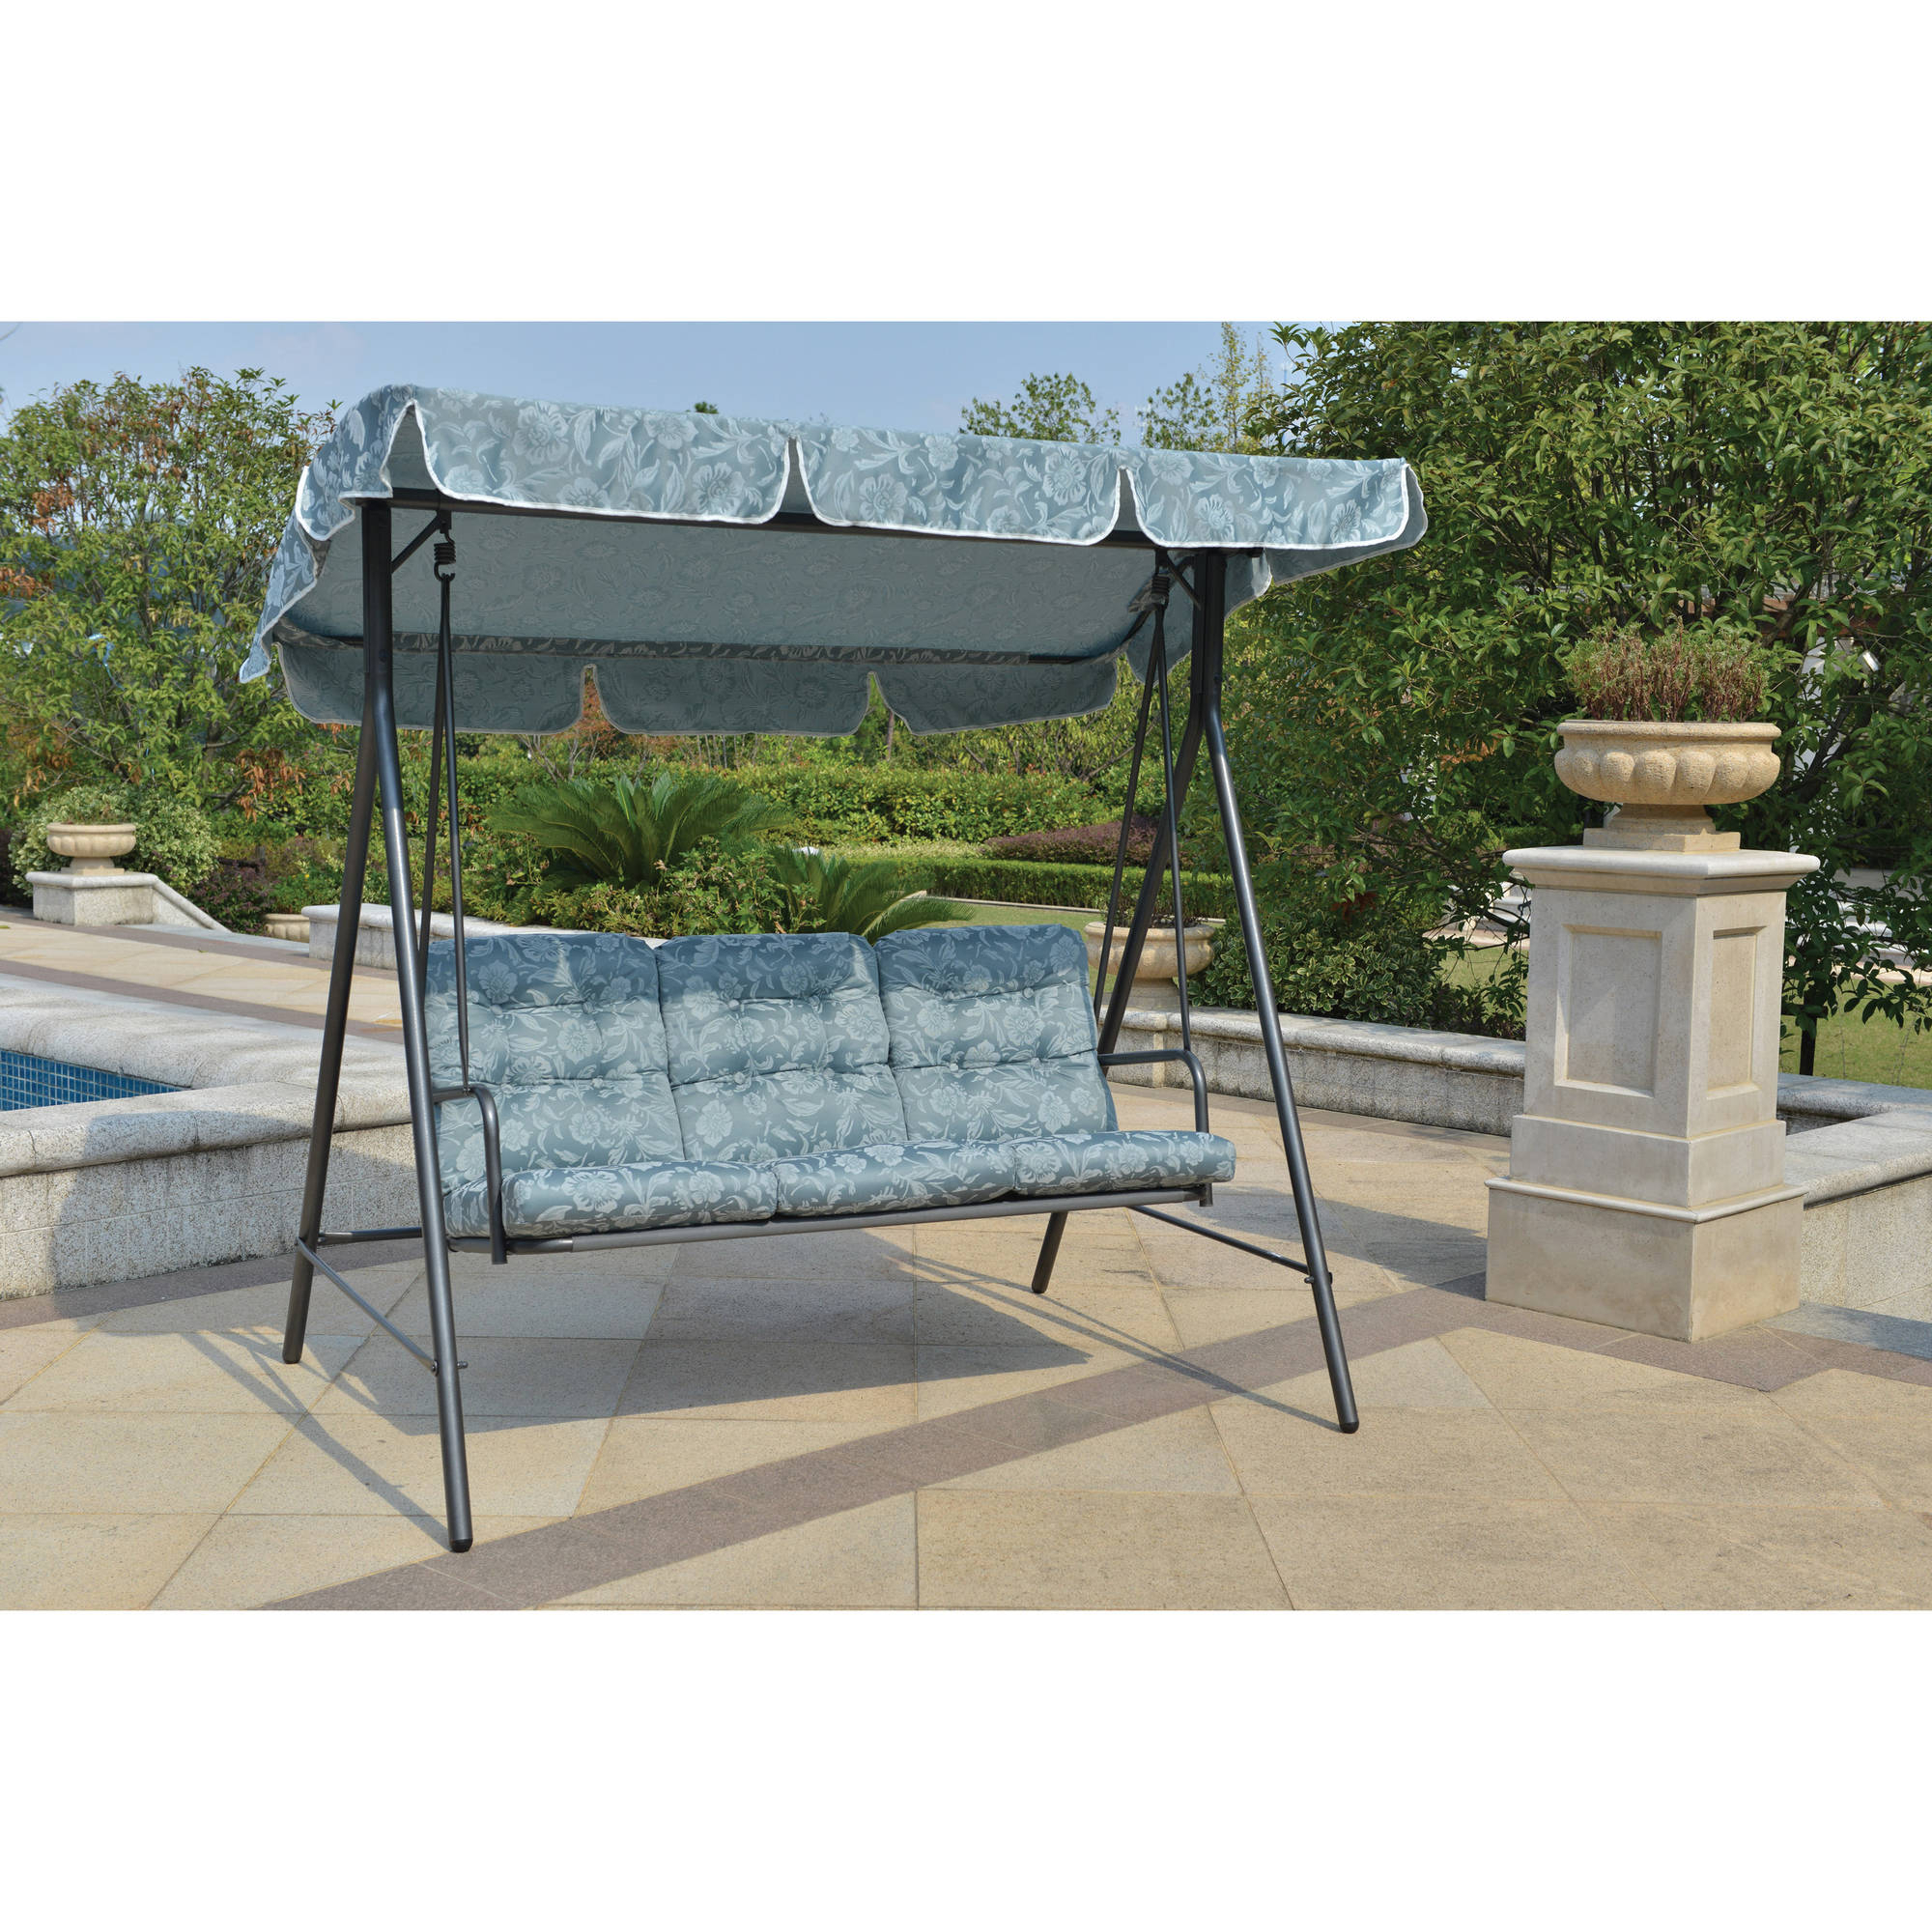 Mainstays Willow Springs Outdoor Swing, Blue, Seats 3 – Walmart With Regard To Well Known Canopy Patio Porch Swings With Pillows And Cup Holders (View 16 of 25)